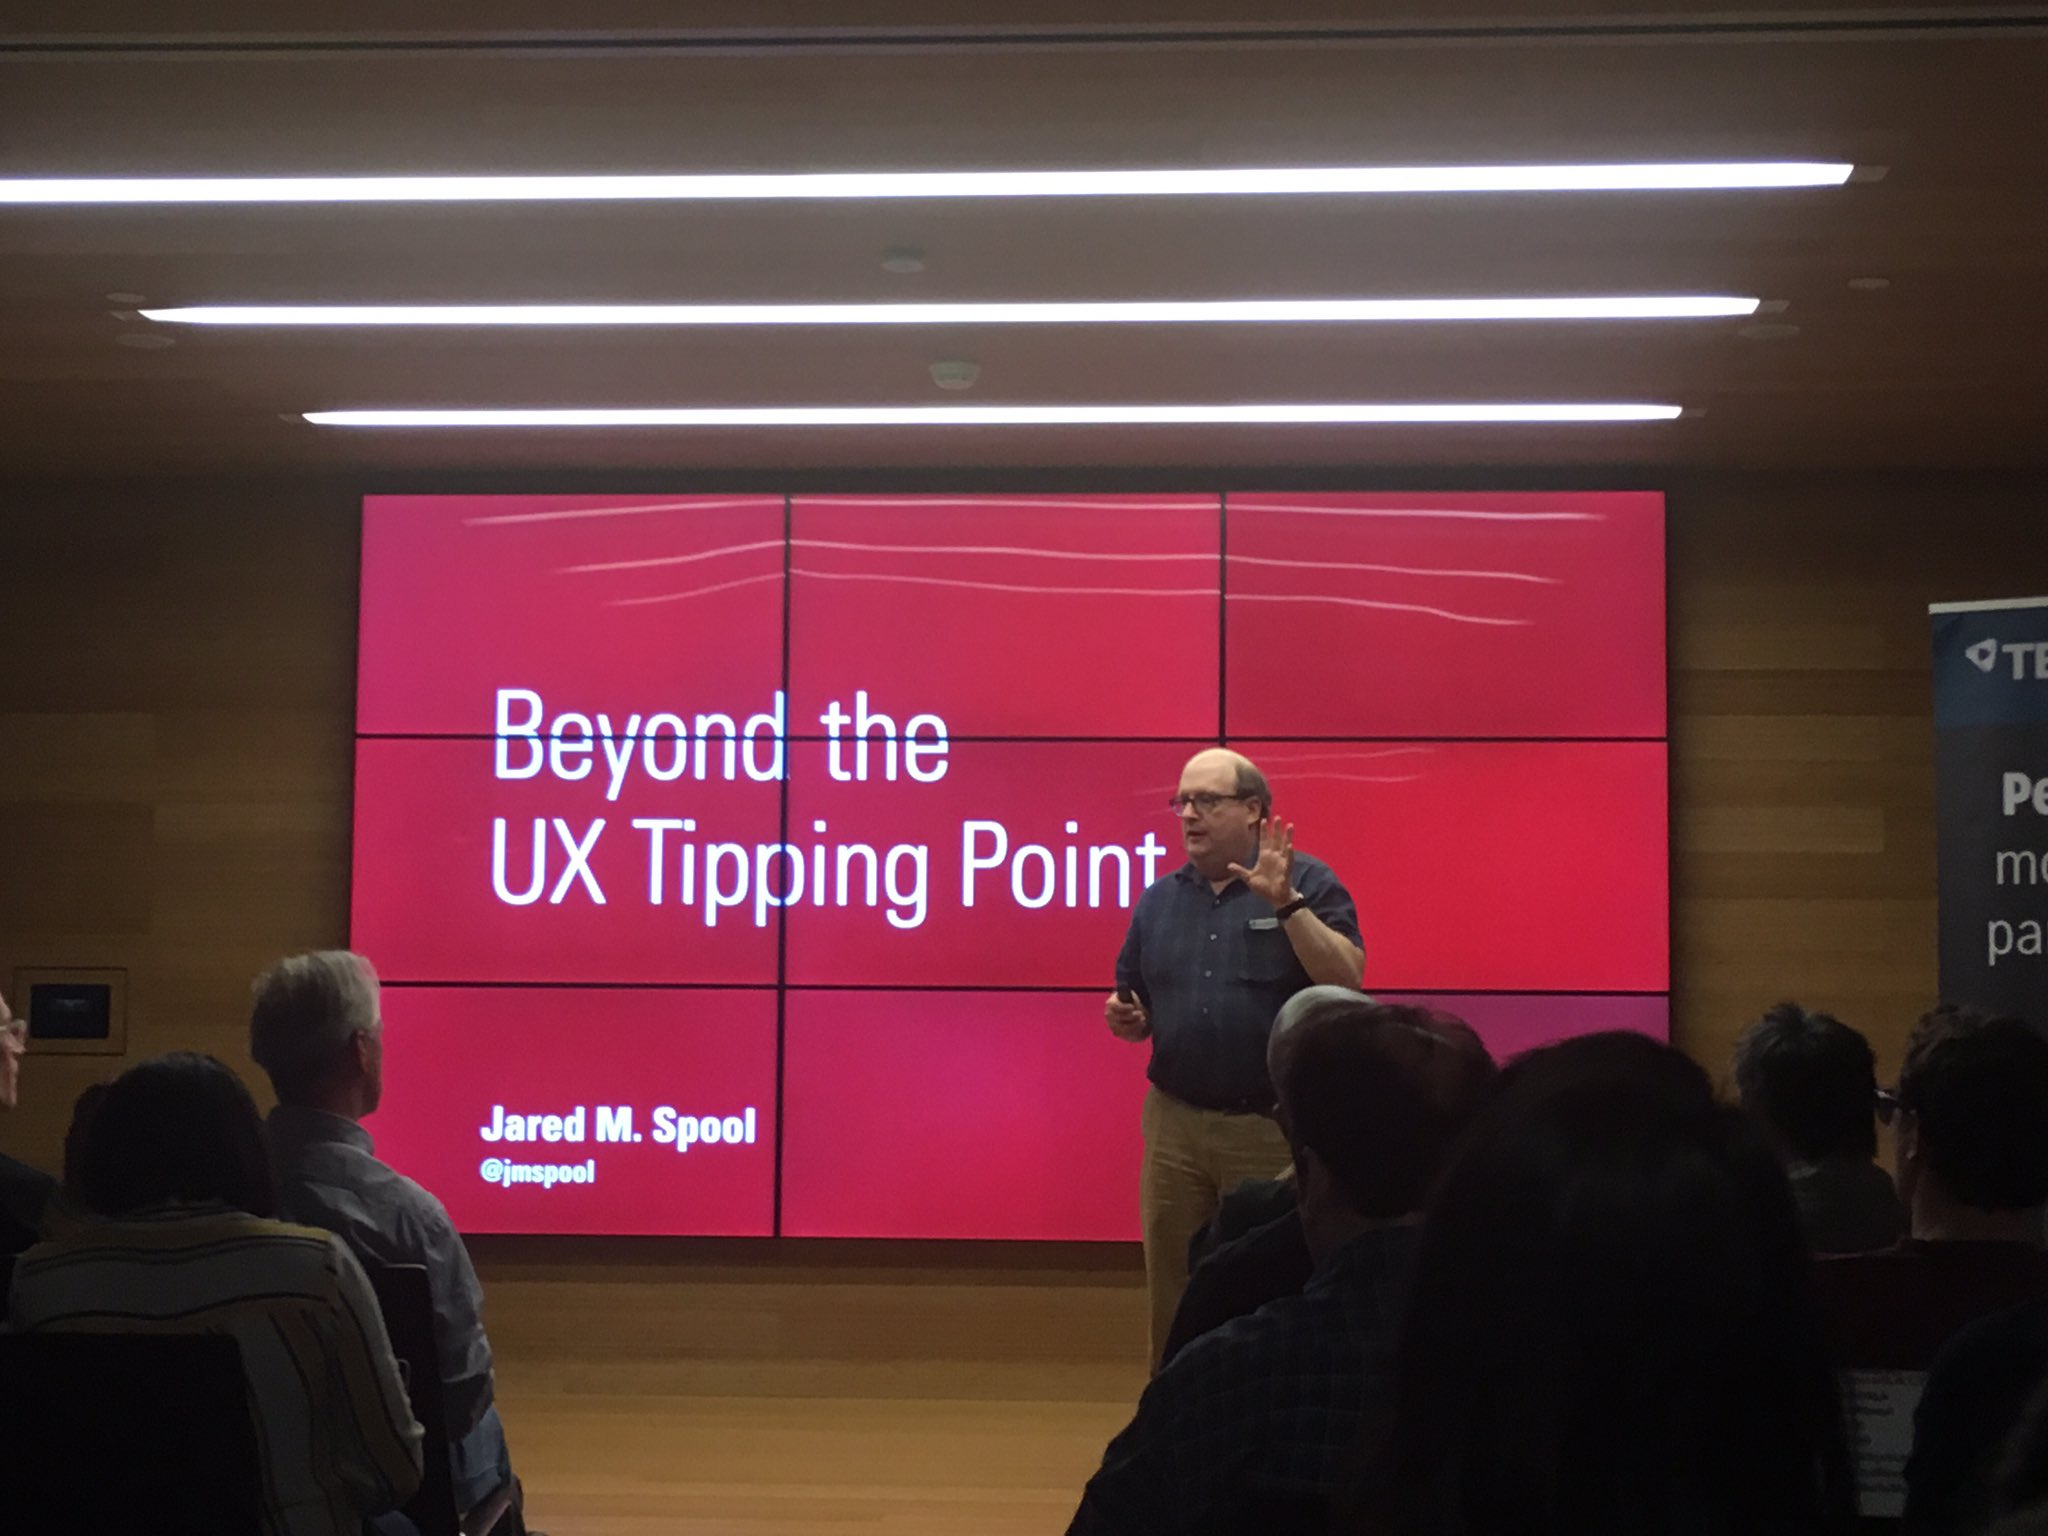 Thumbnail for UXPALA presents An Evening with Jared Spool: Beyond the UX Tipping Point